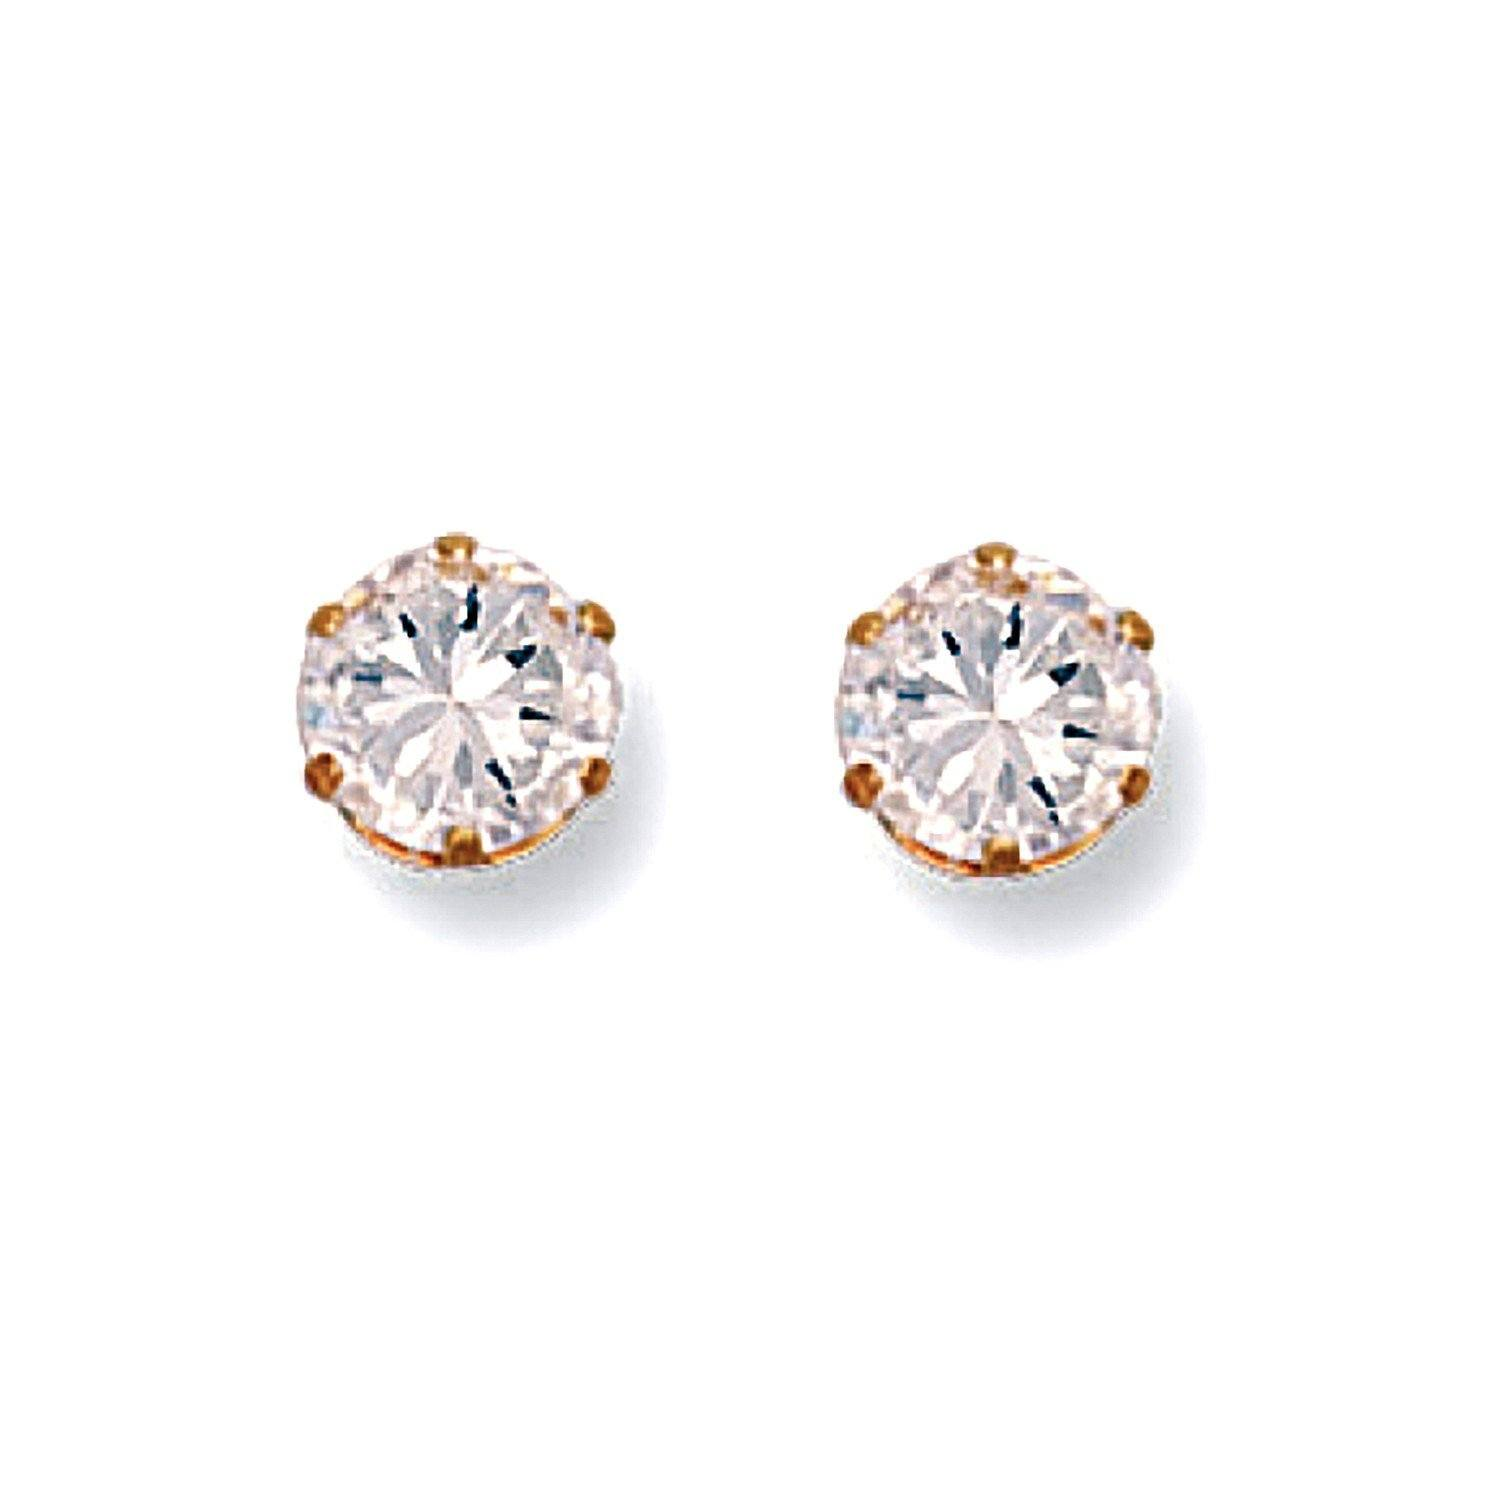 9ct yellow gold cz stud earrings with claw setting